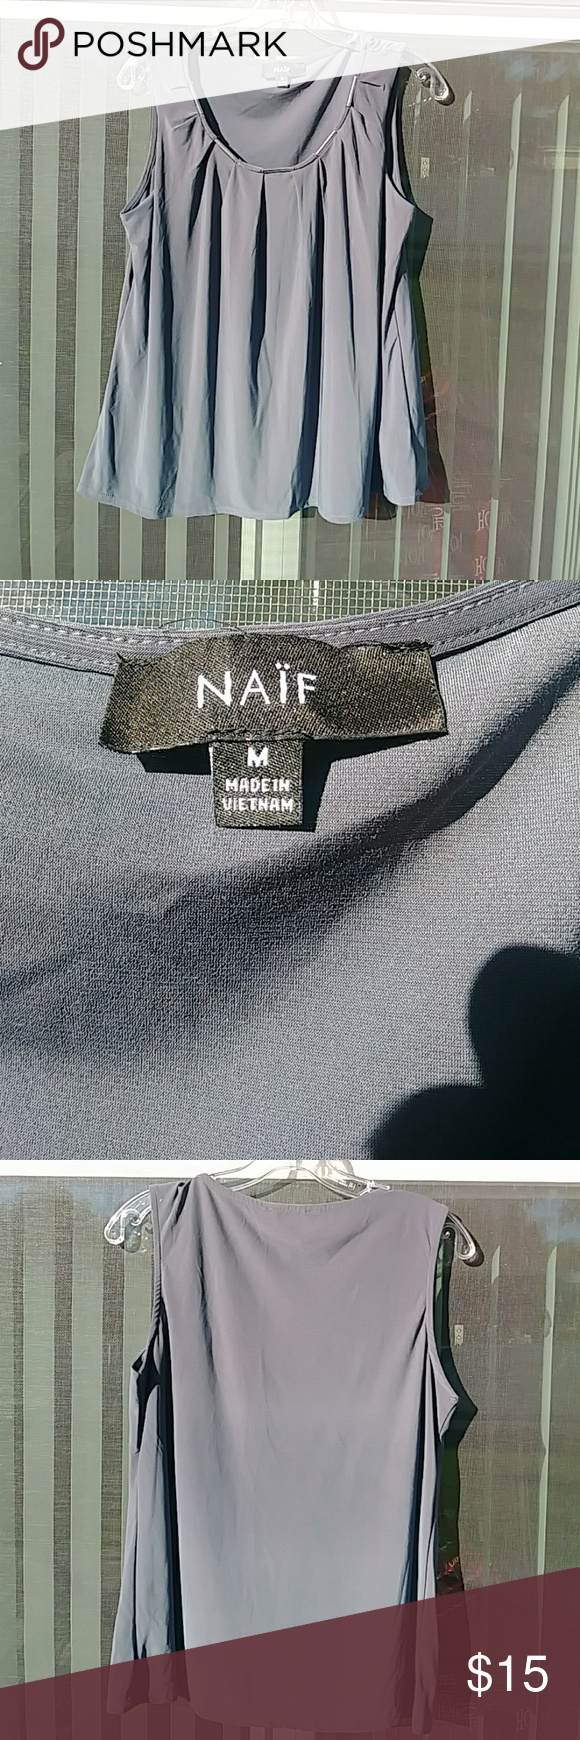 Women's Naif Top Top is in very good condition.  Sleeveless and dark gray in color. Naif Tops